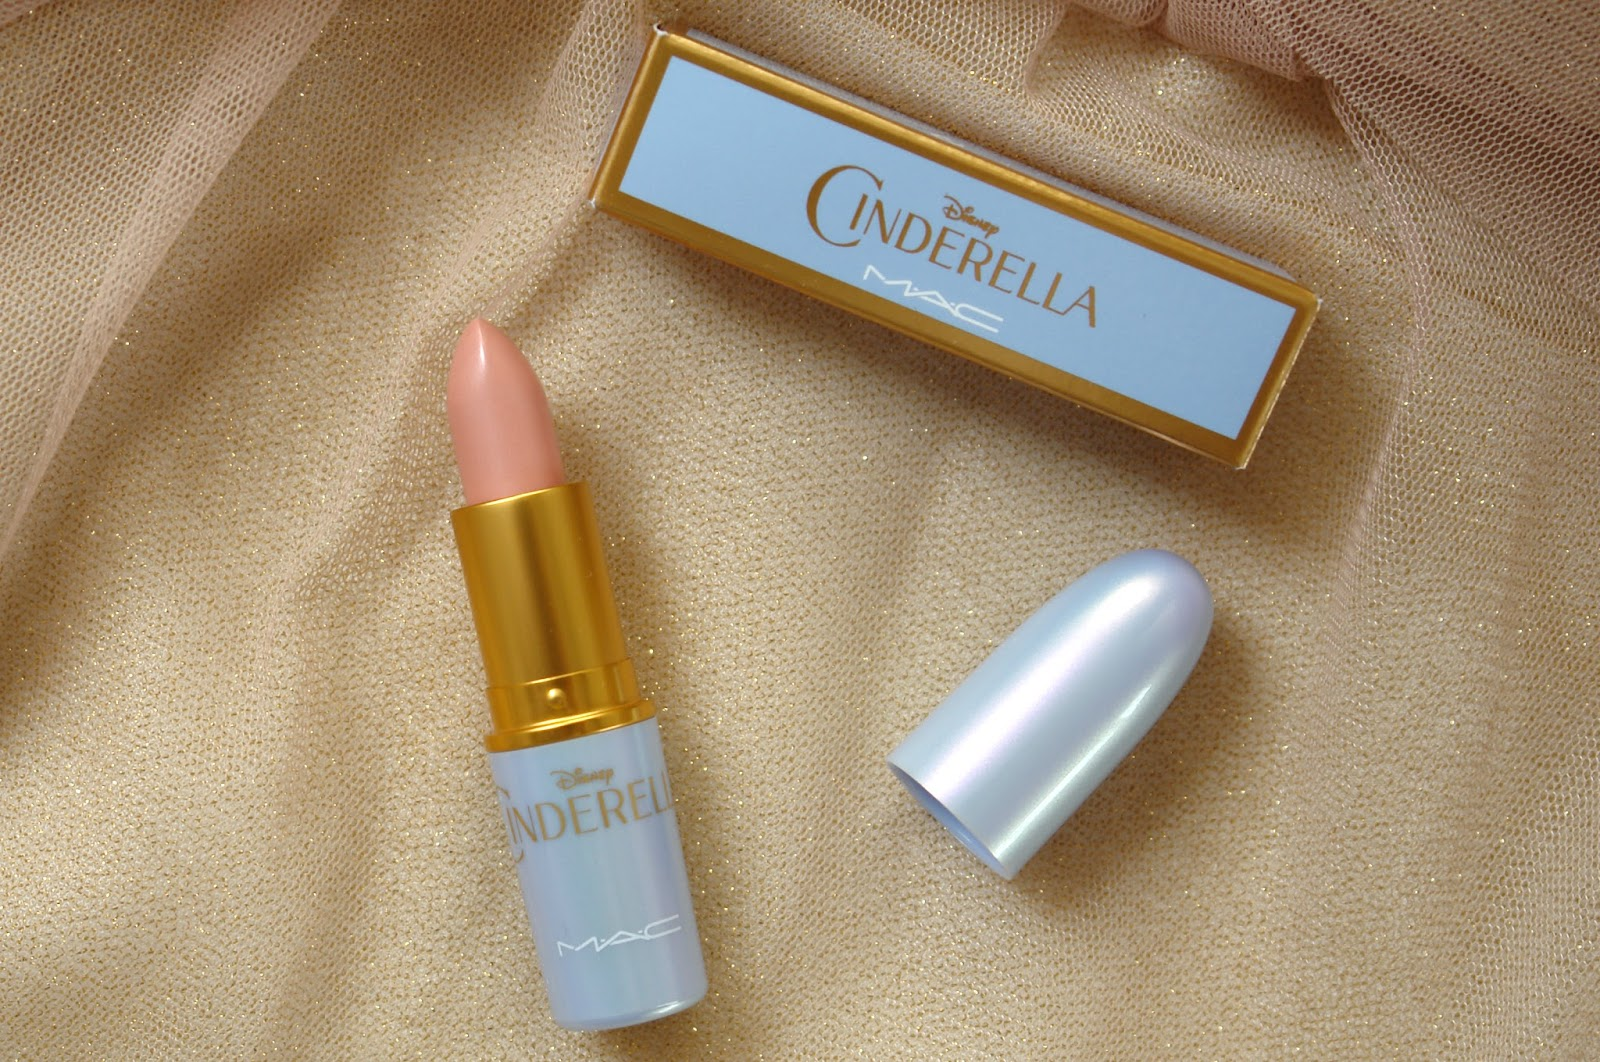 MAC Cinderella Royal Ball lipstick review + swatches, beauty, lipstick, MAC, make up, review,